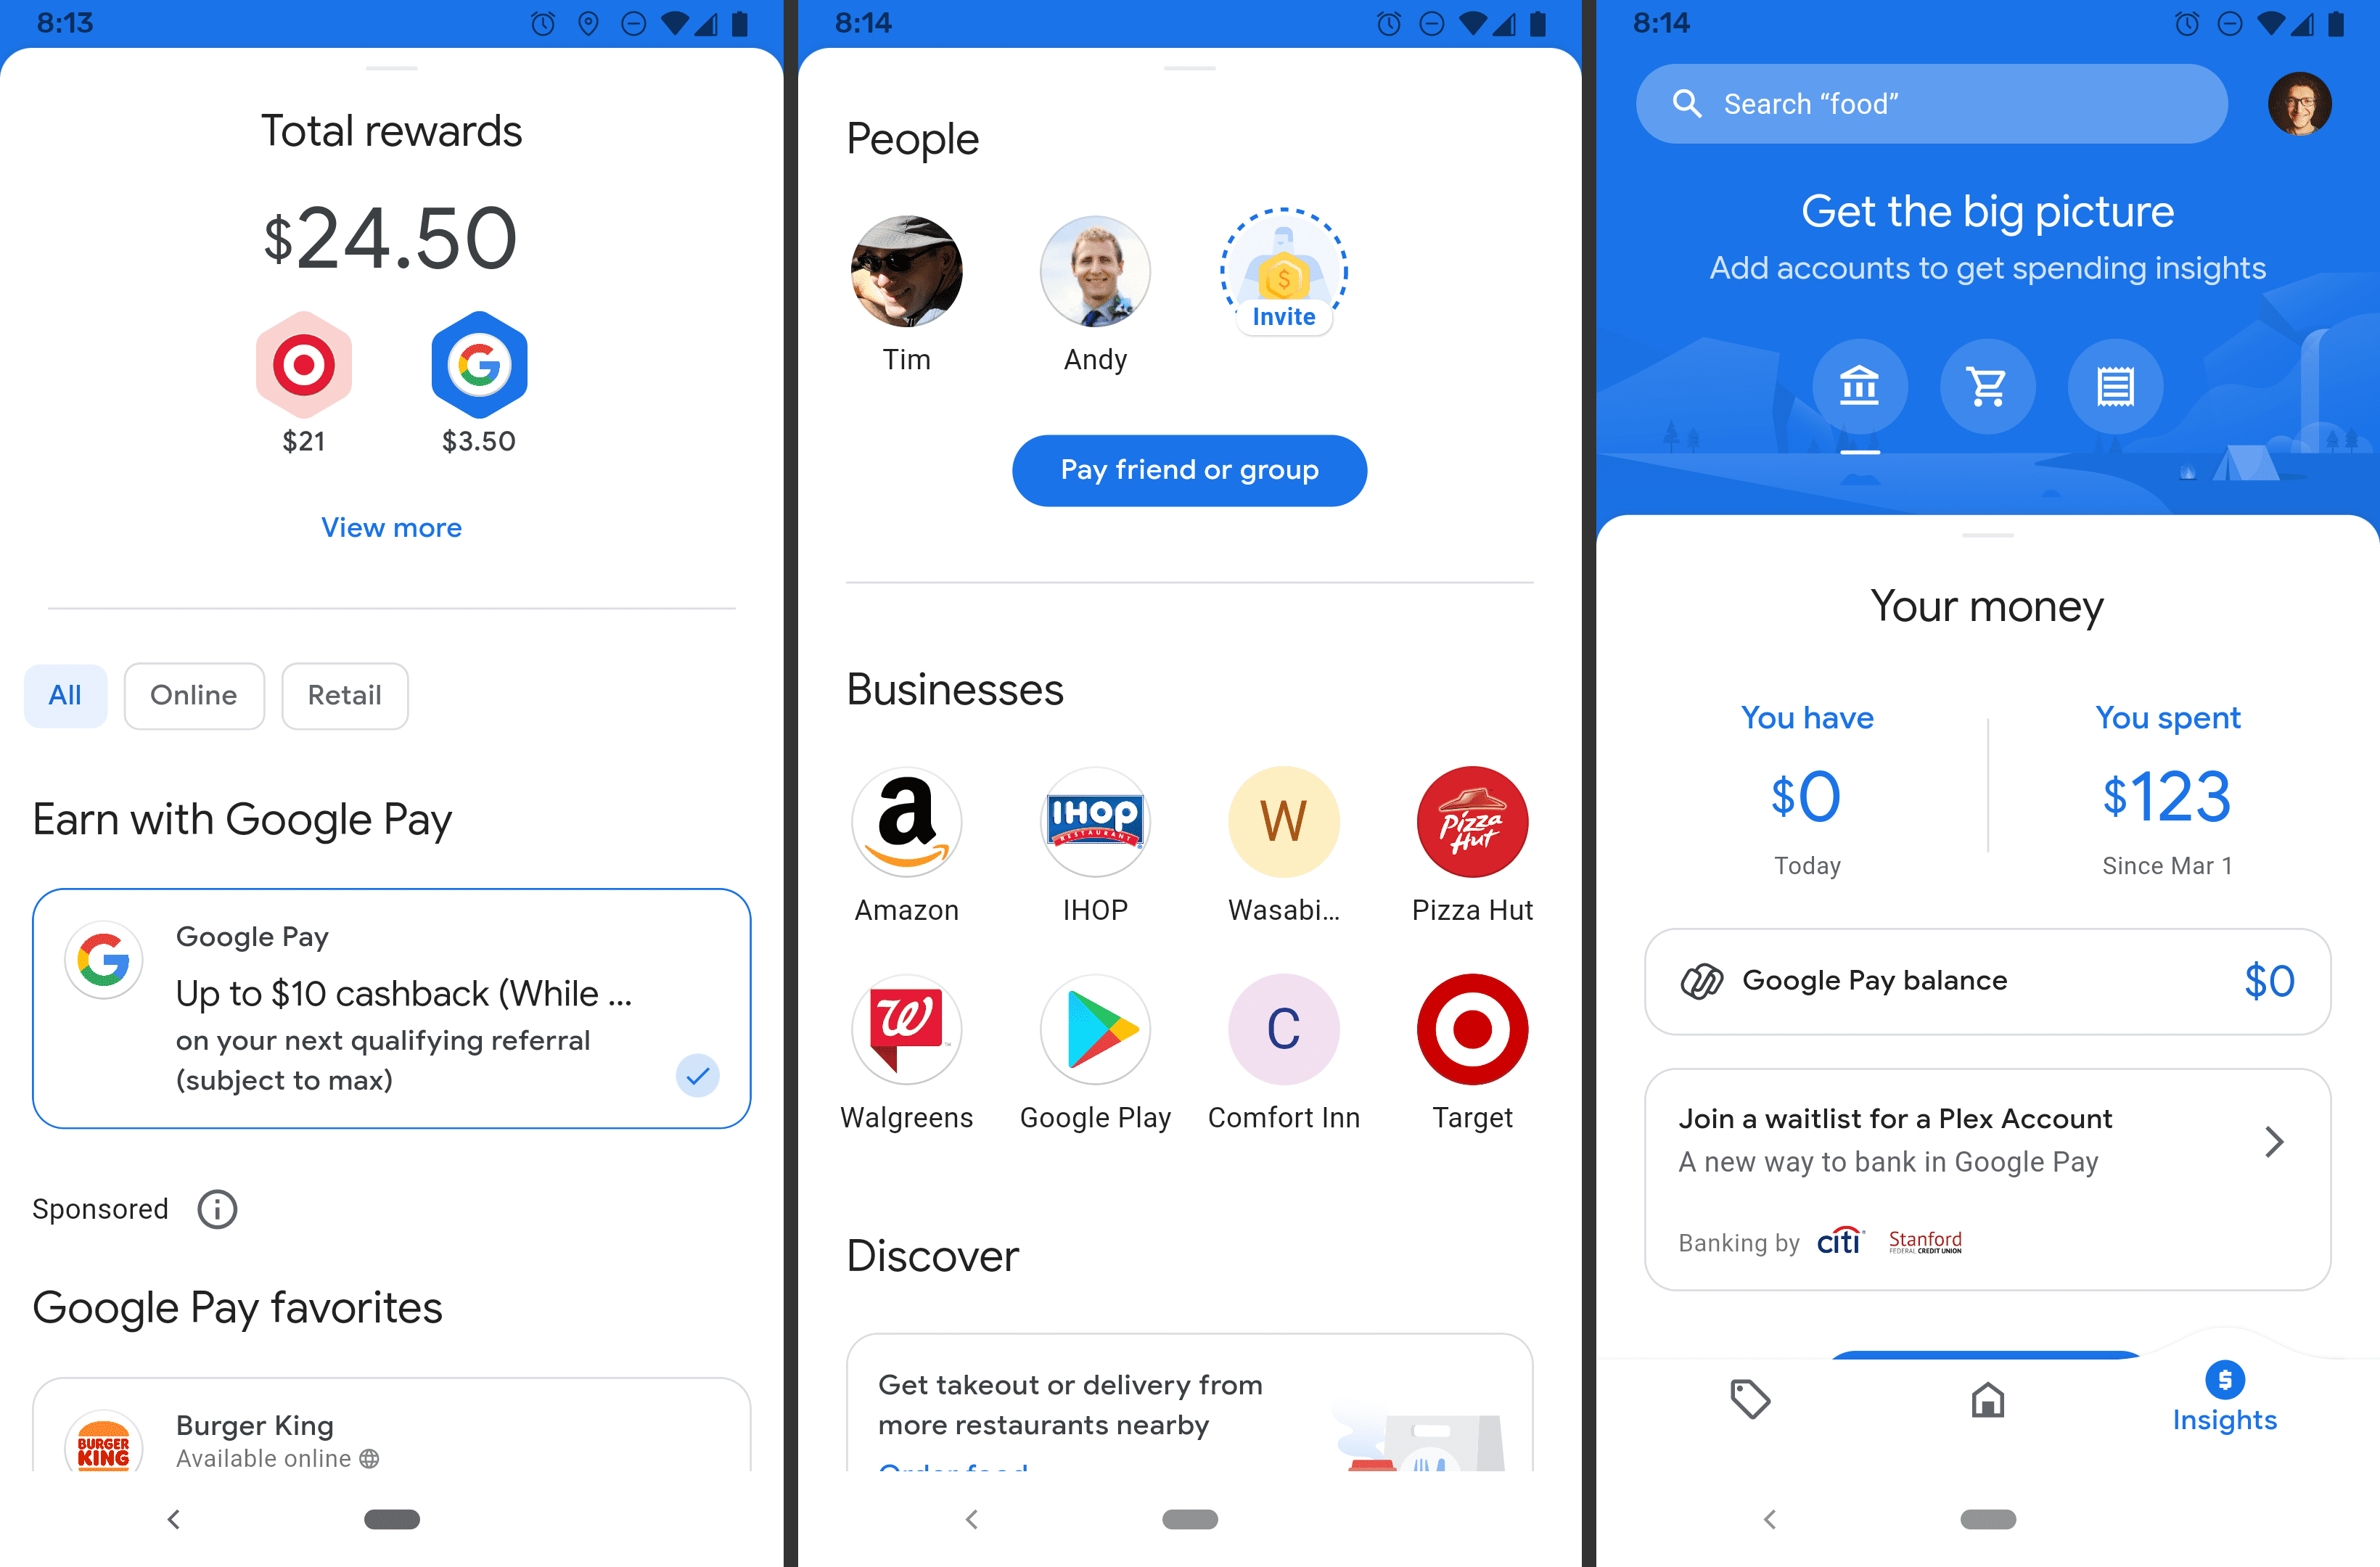 Google Pay rewards, businesses, and money screens on Android app